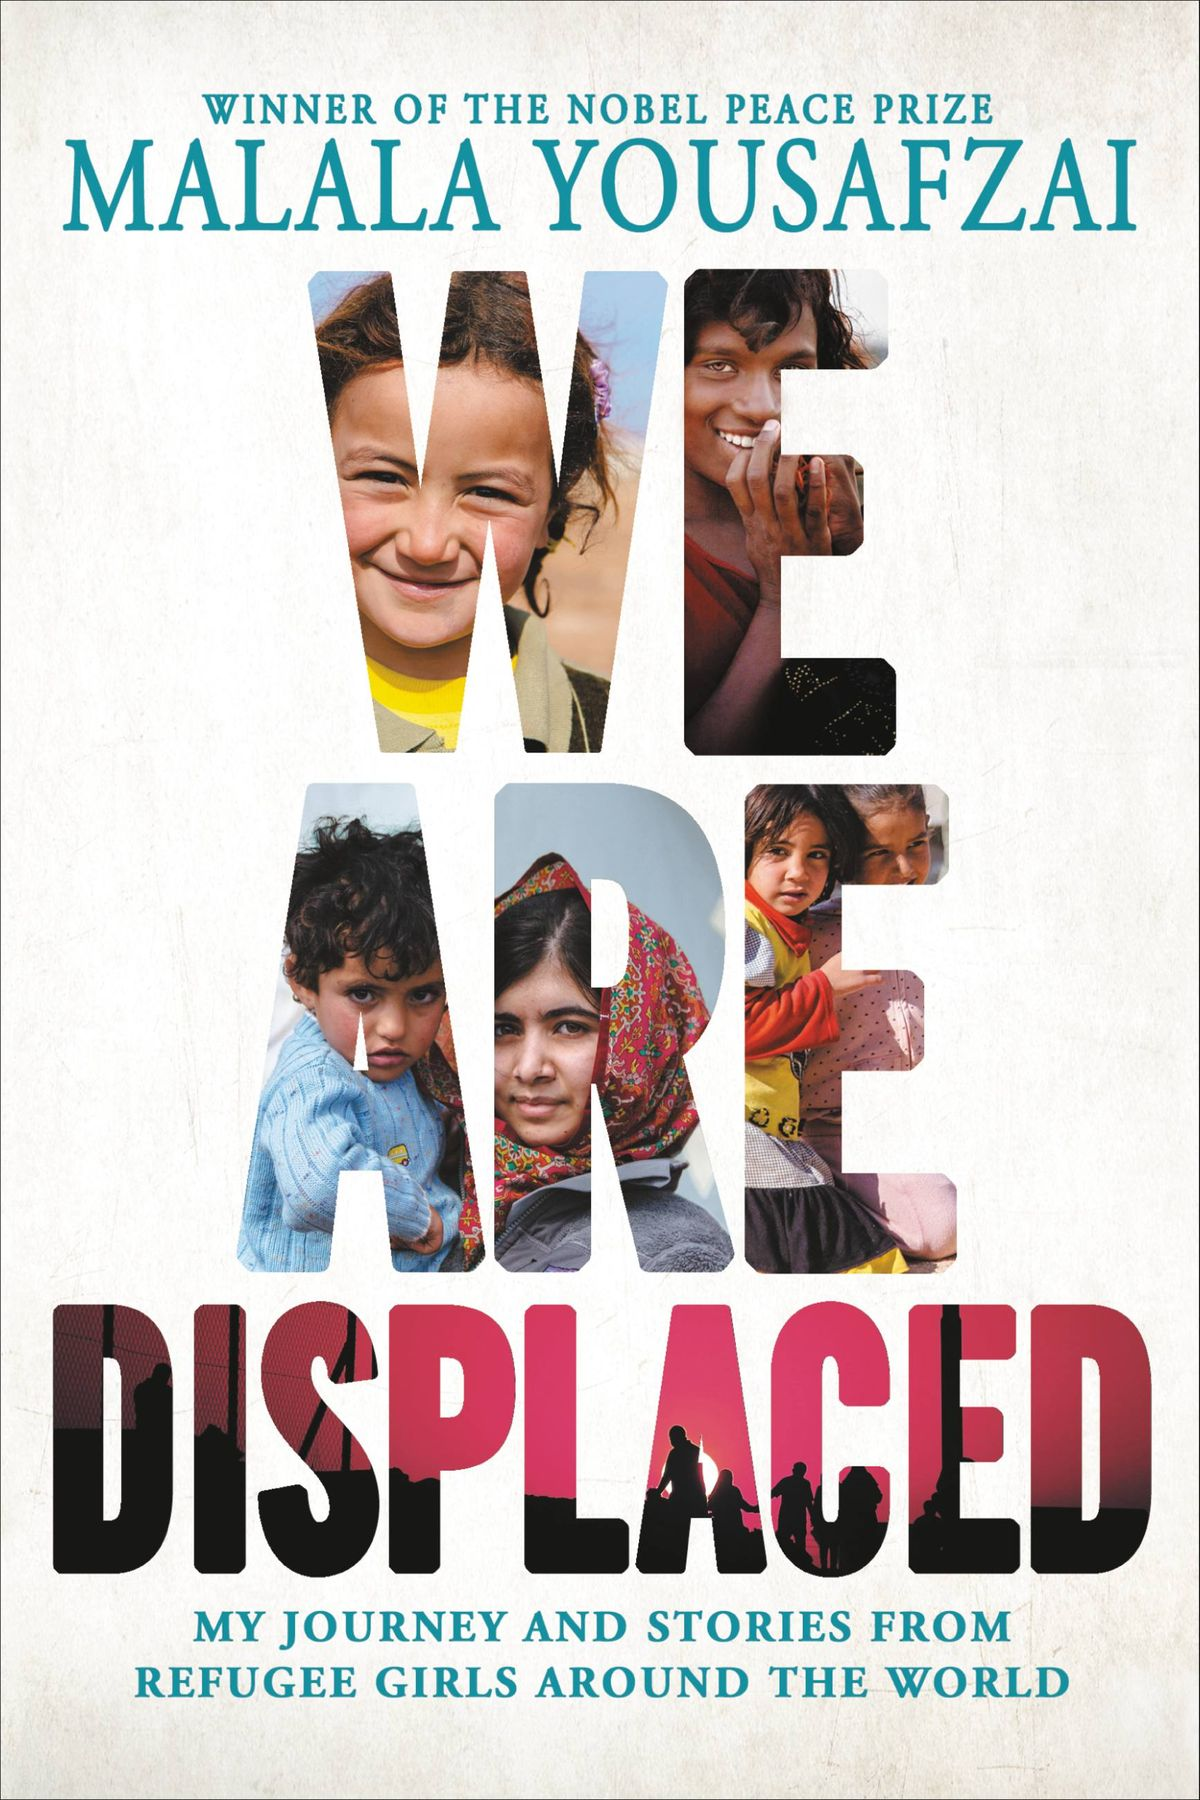 We Are Displaced   My Journey and Stories from Refugee Girls Around the World edited by Malala Yousafzai